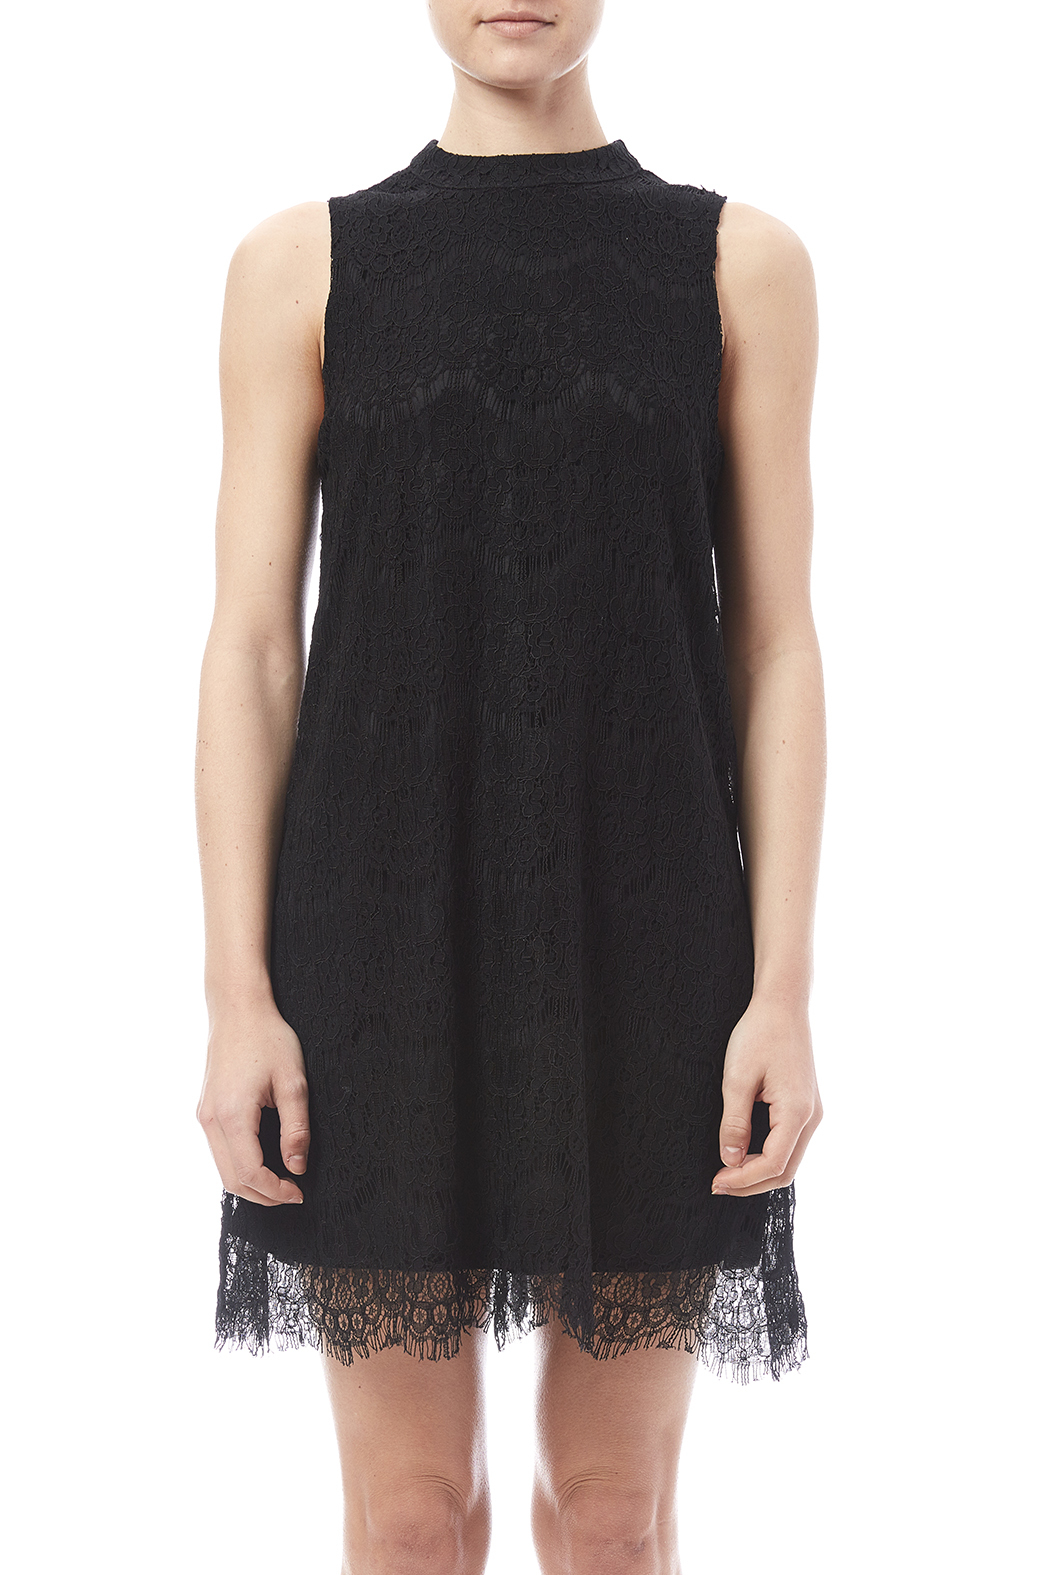 fashion on earth Lace Shift Dress - Side Cropped Image